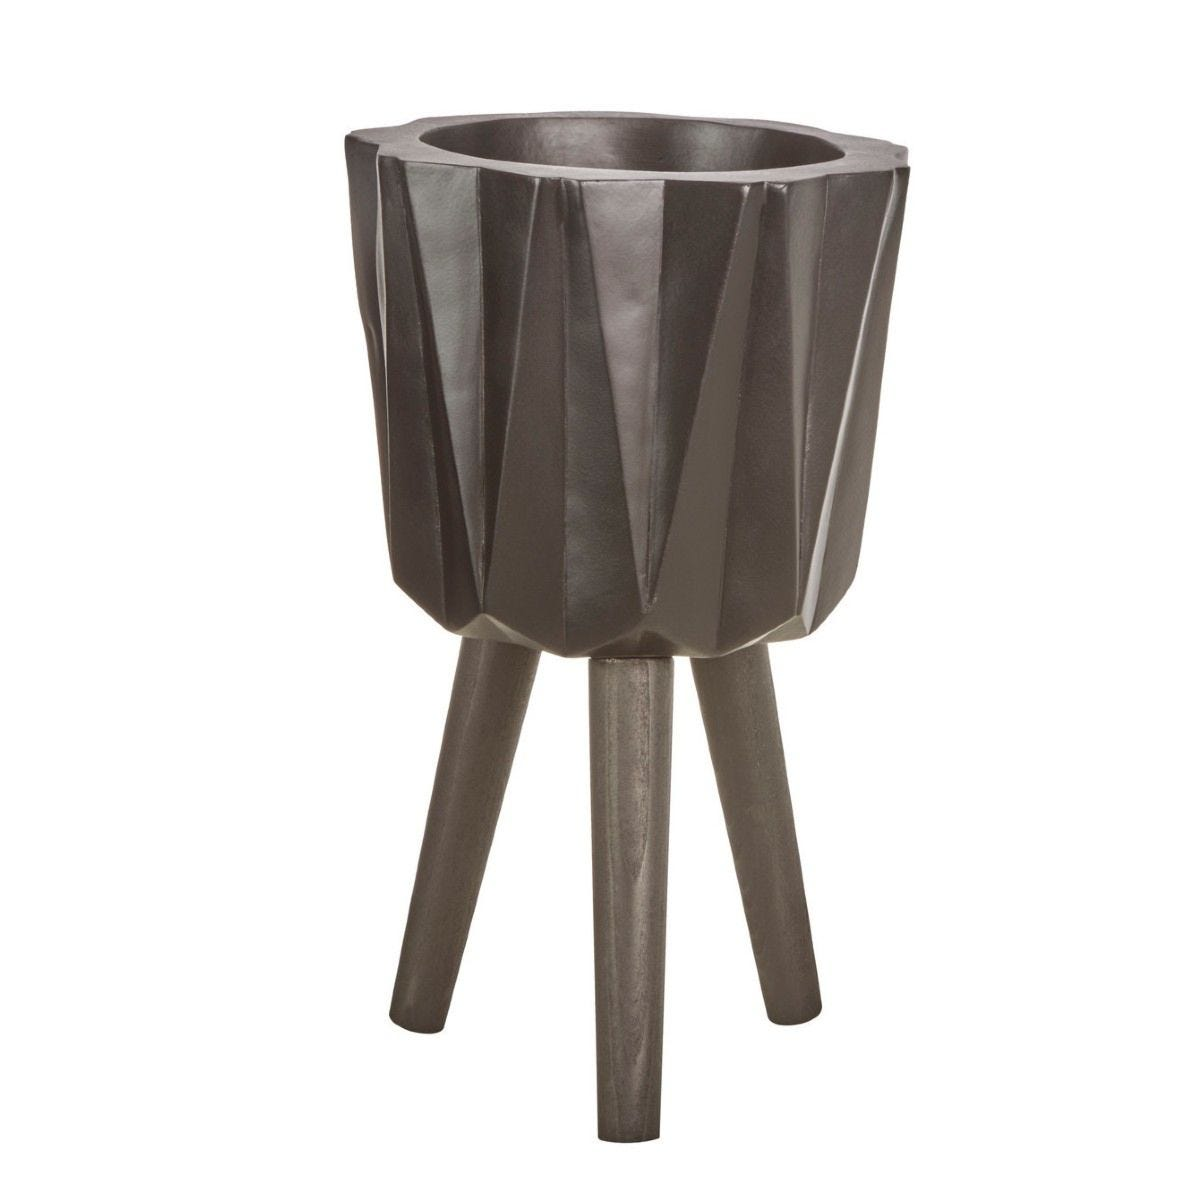 Small Multi-Faceted Planter in a Magnesia Fibreglass with Beech Wood Legs - Black Finish